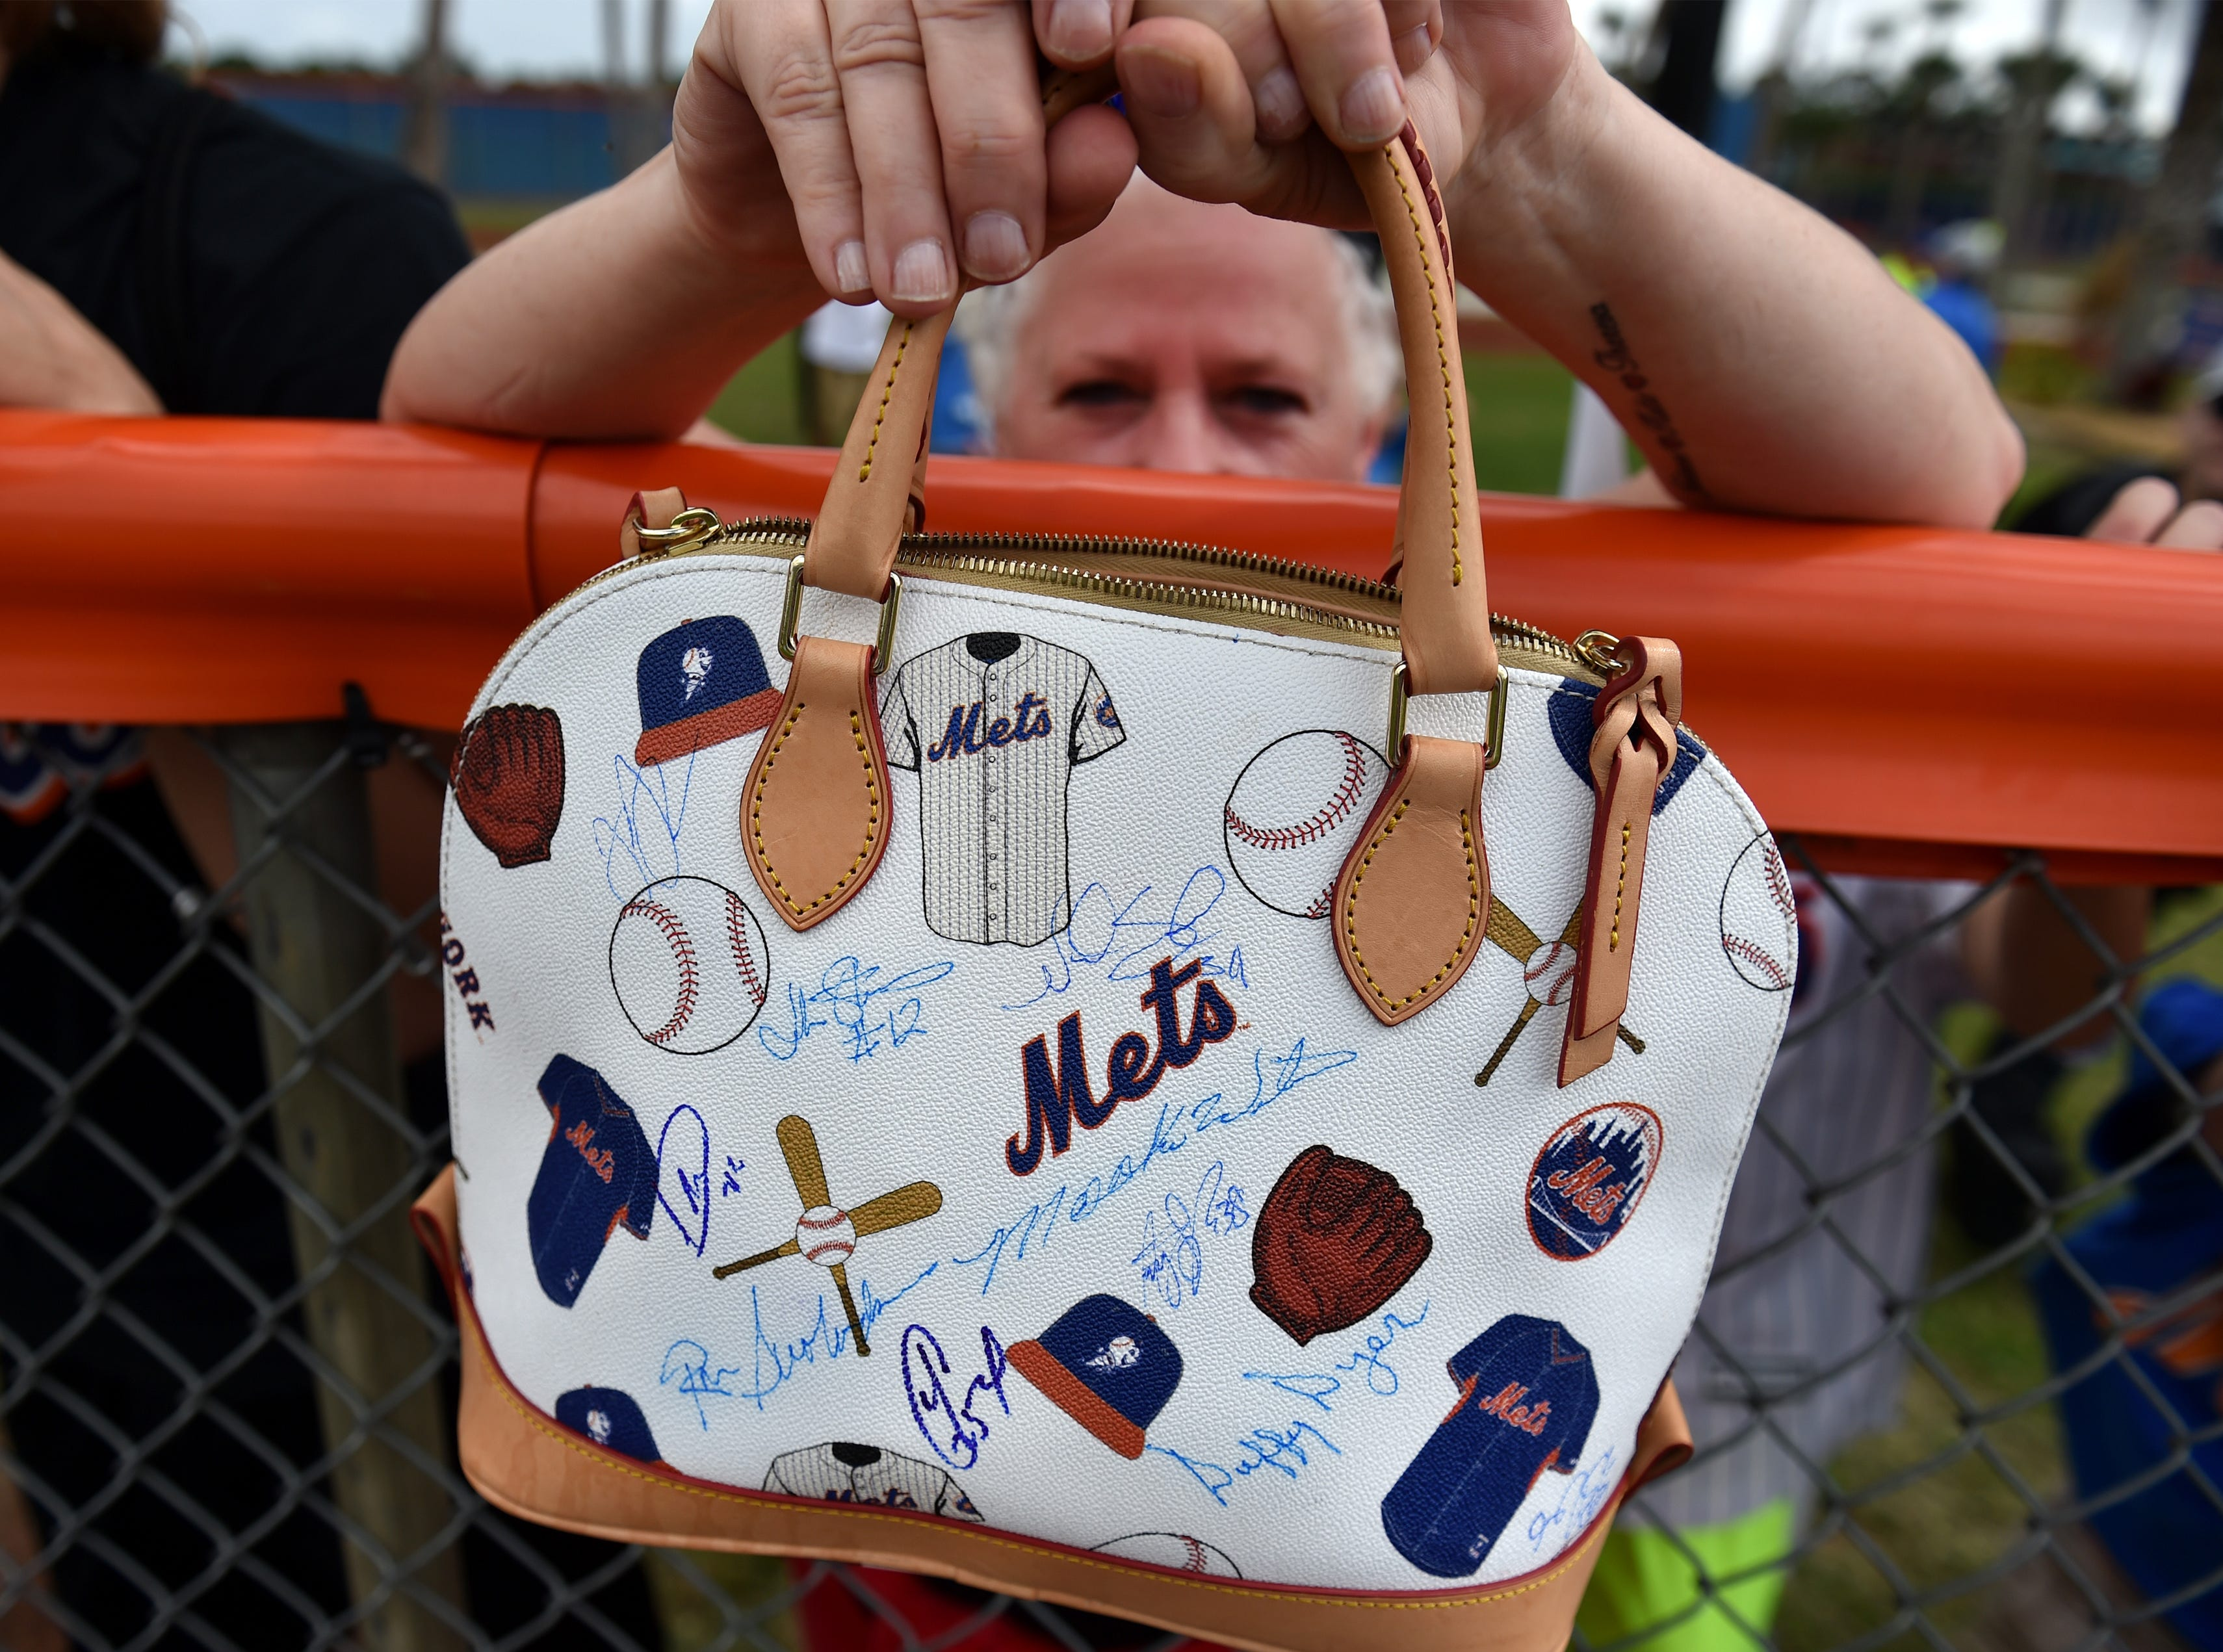 """Gigi Bowman, of Port St. Lucie, waits for autographs on her purse as the New York Mets pitchers and catchers start to walk by after finishing their workouts on Wednesday, Feb. 14, 2016 at First Data Field in Port St. Lucie. """"This is like my dream,"""" Bowman said."""